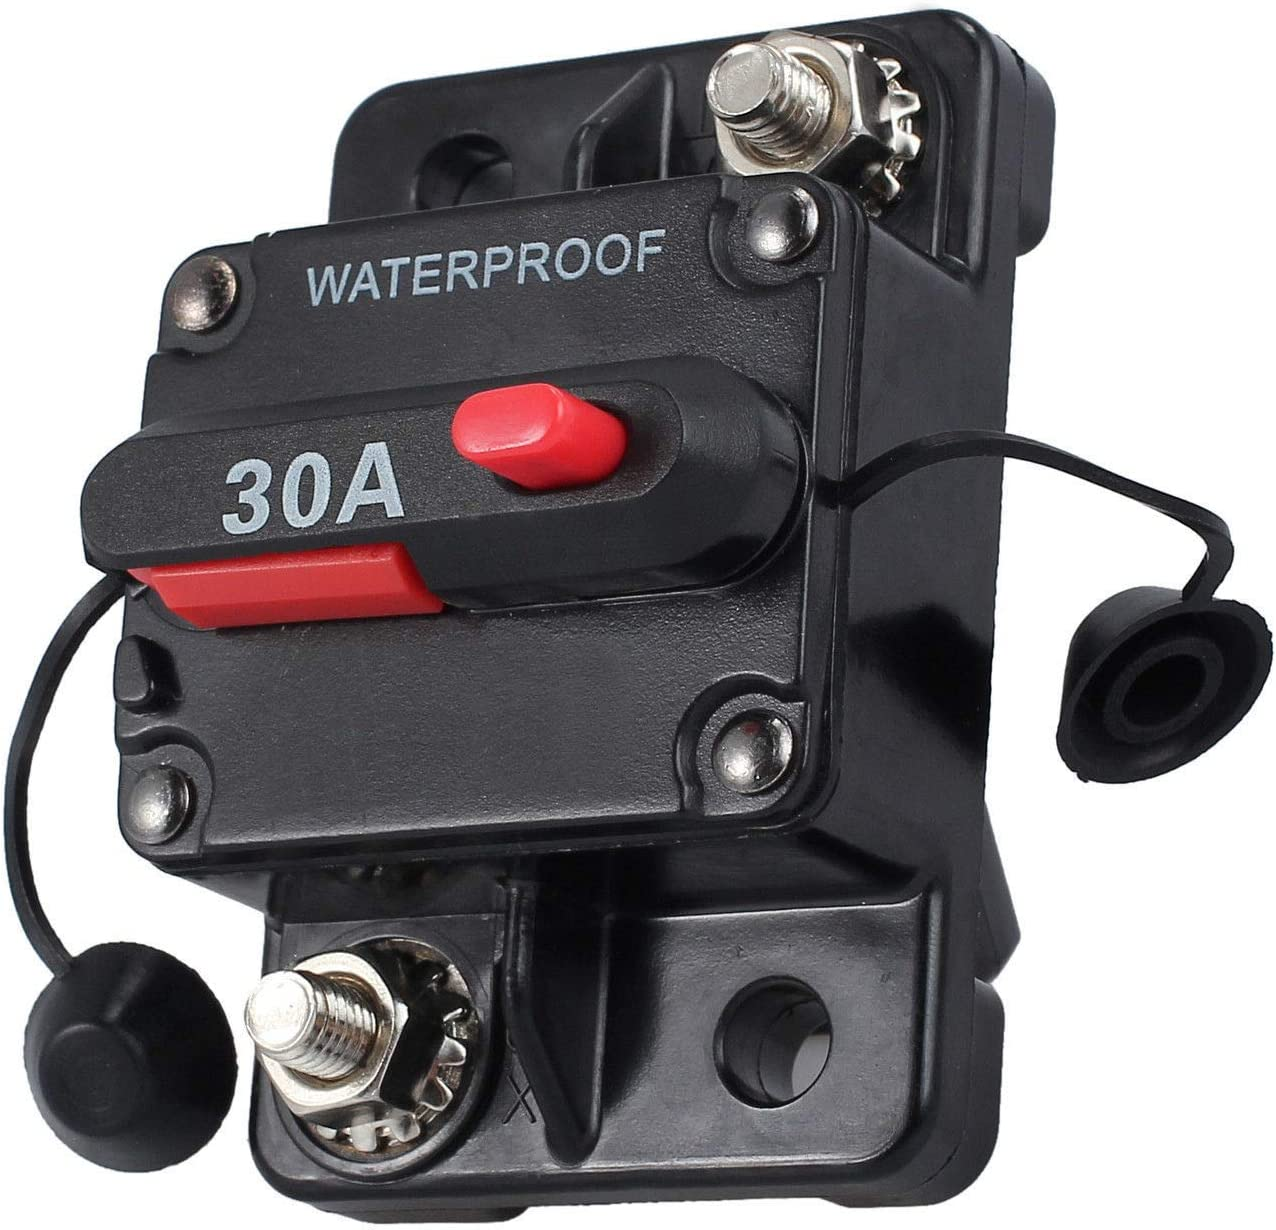 MASO 30 Amp Waterproof Car Circuit Breaker with Manual Reset Suitable for Motor Auto Car Marine Boat Bike Stereo Audio 12V-24V DC: Automotive